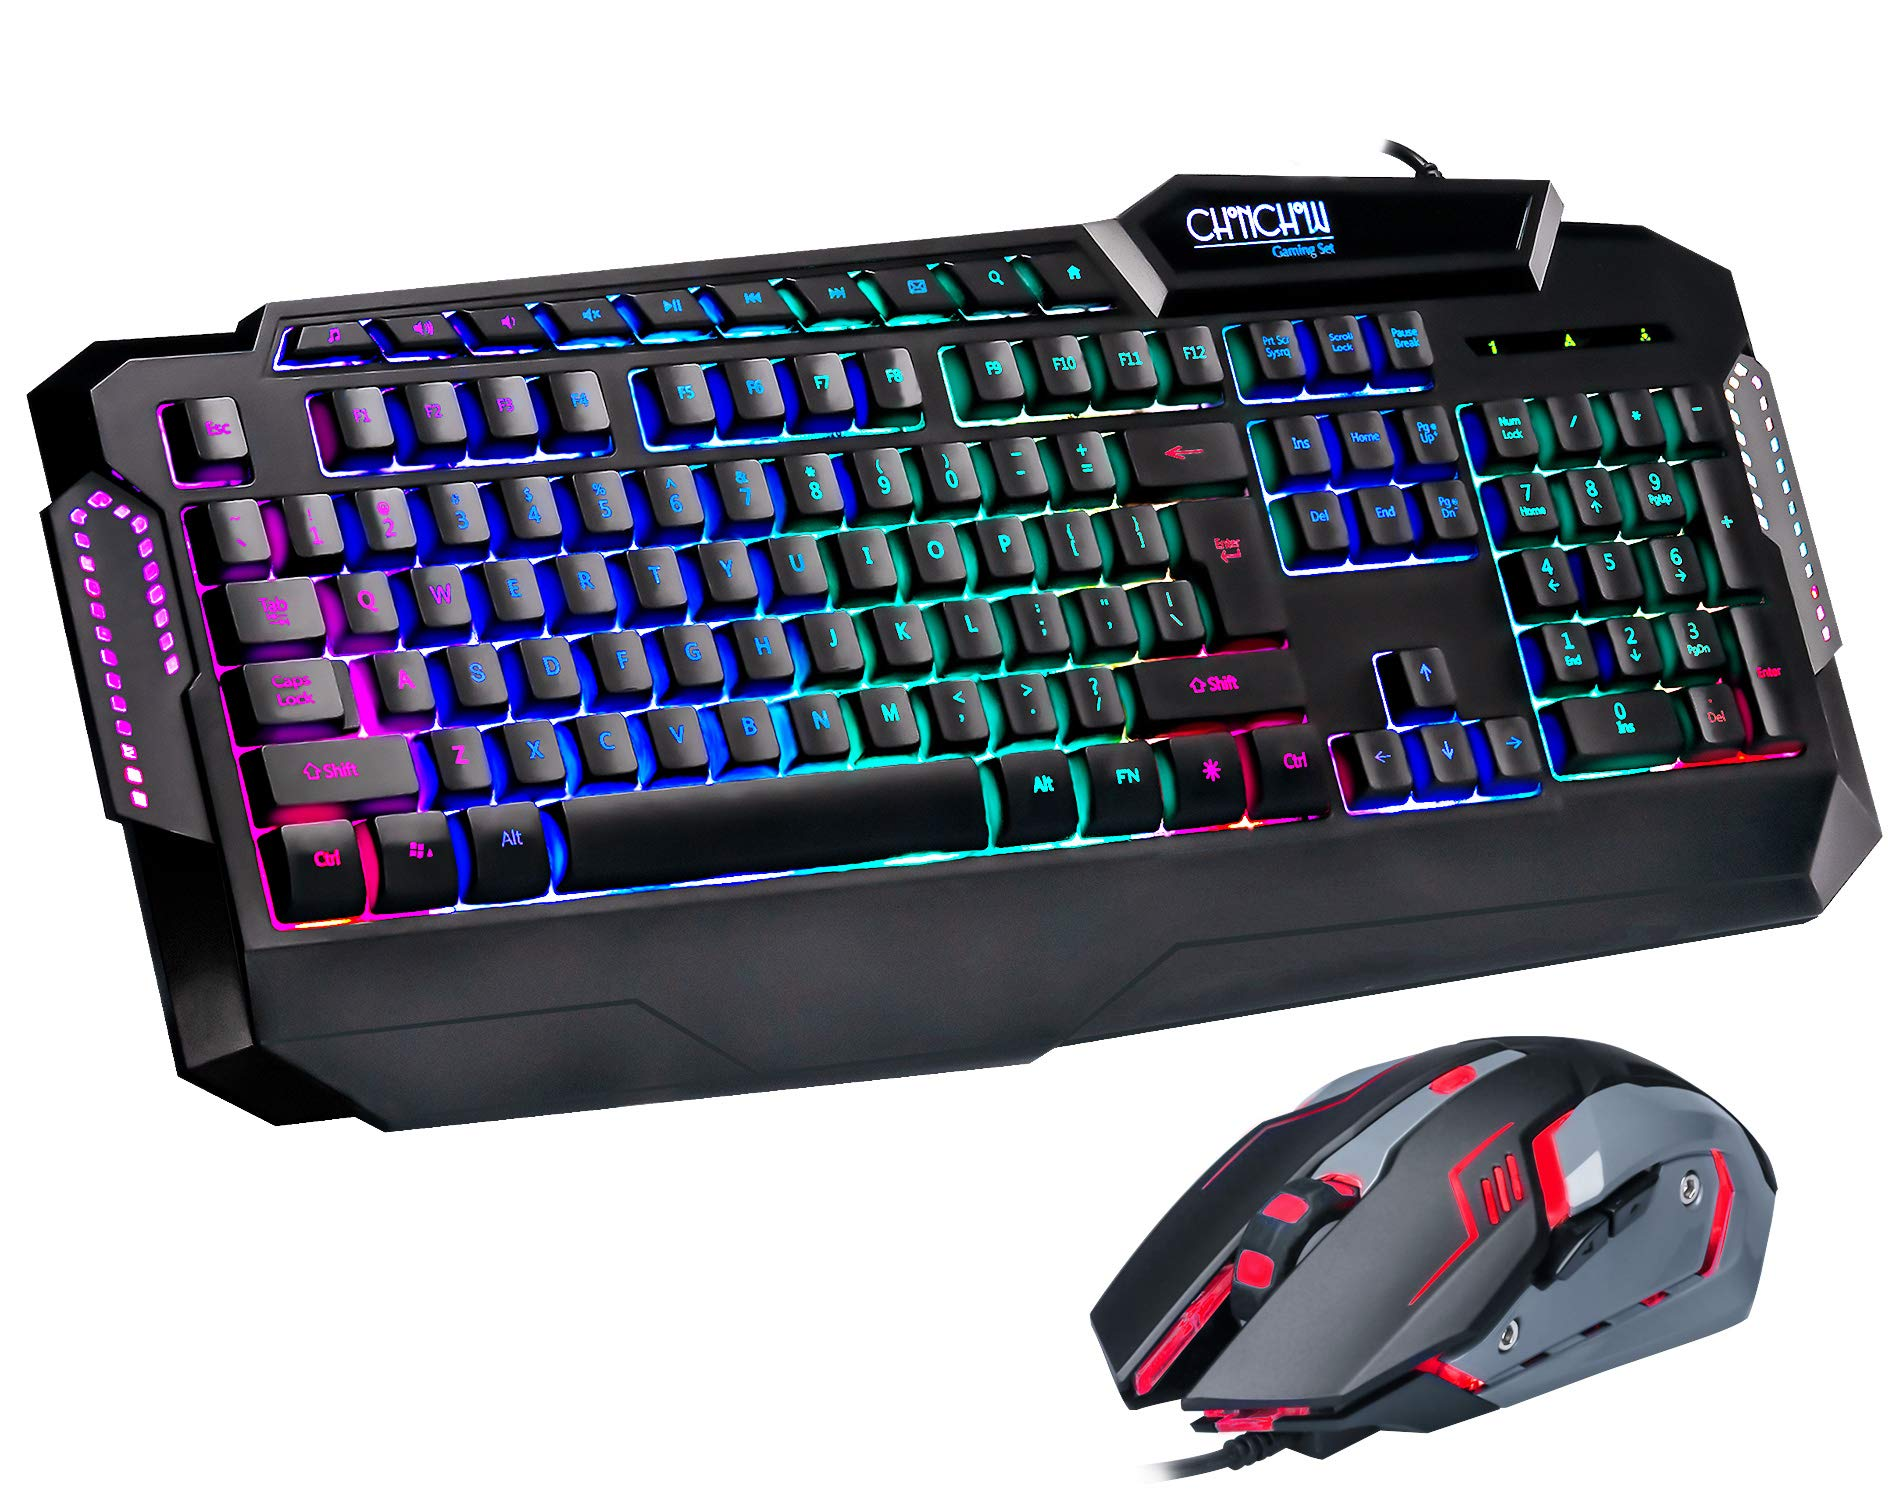 Gaming Keyboard And Mouse Combo Chonchow Usb Led Rainbow Backlit Keyboard For Ps4 Mac Xbox Pc Windows Laptop